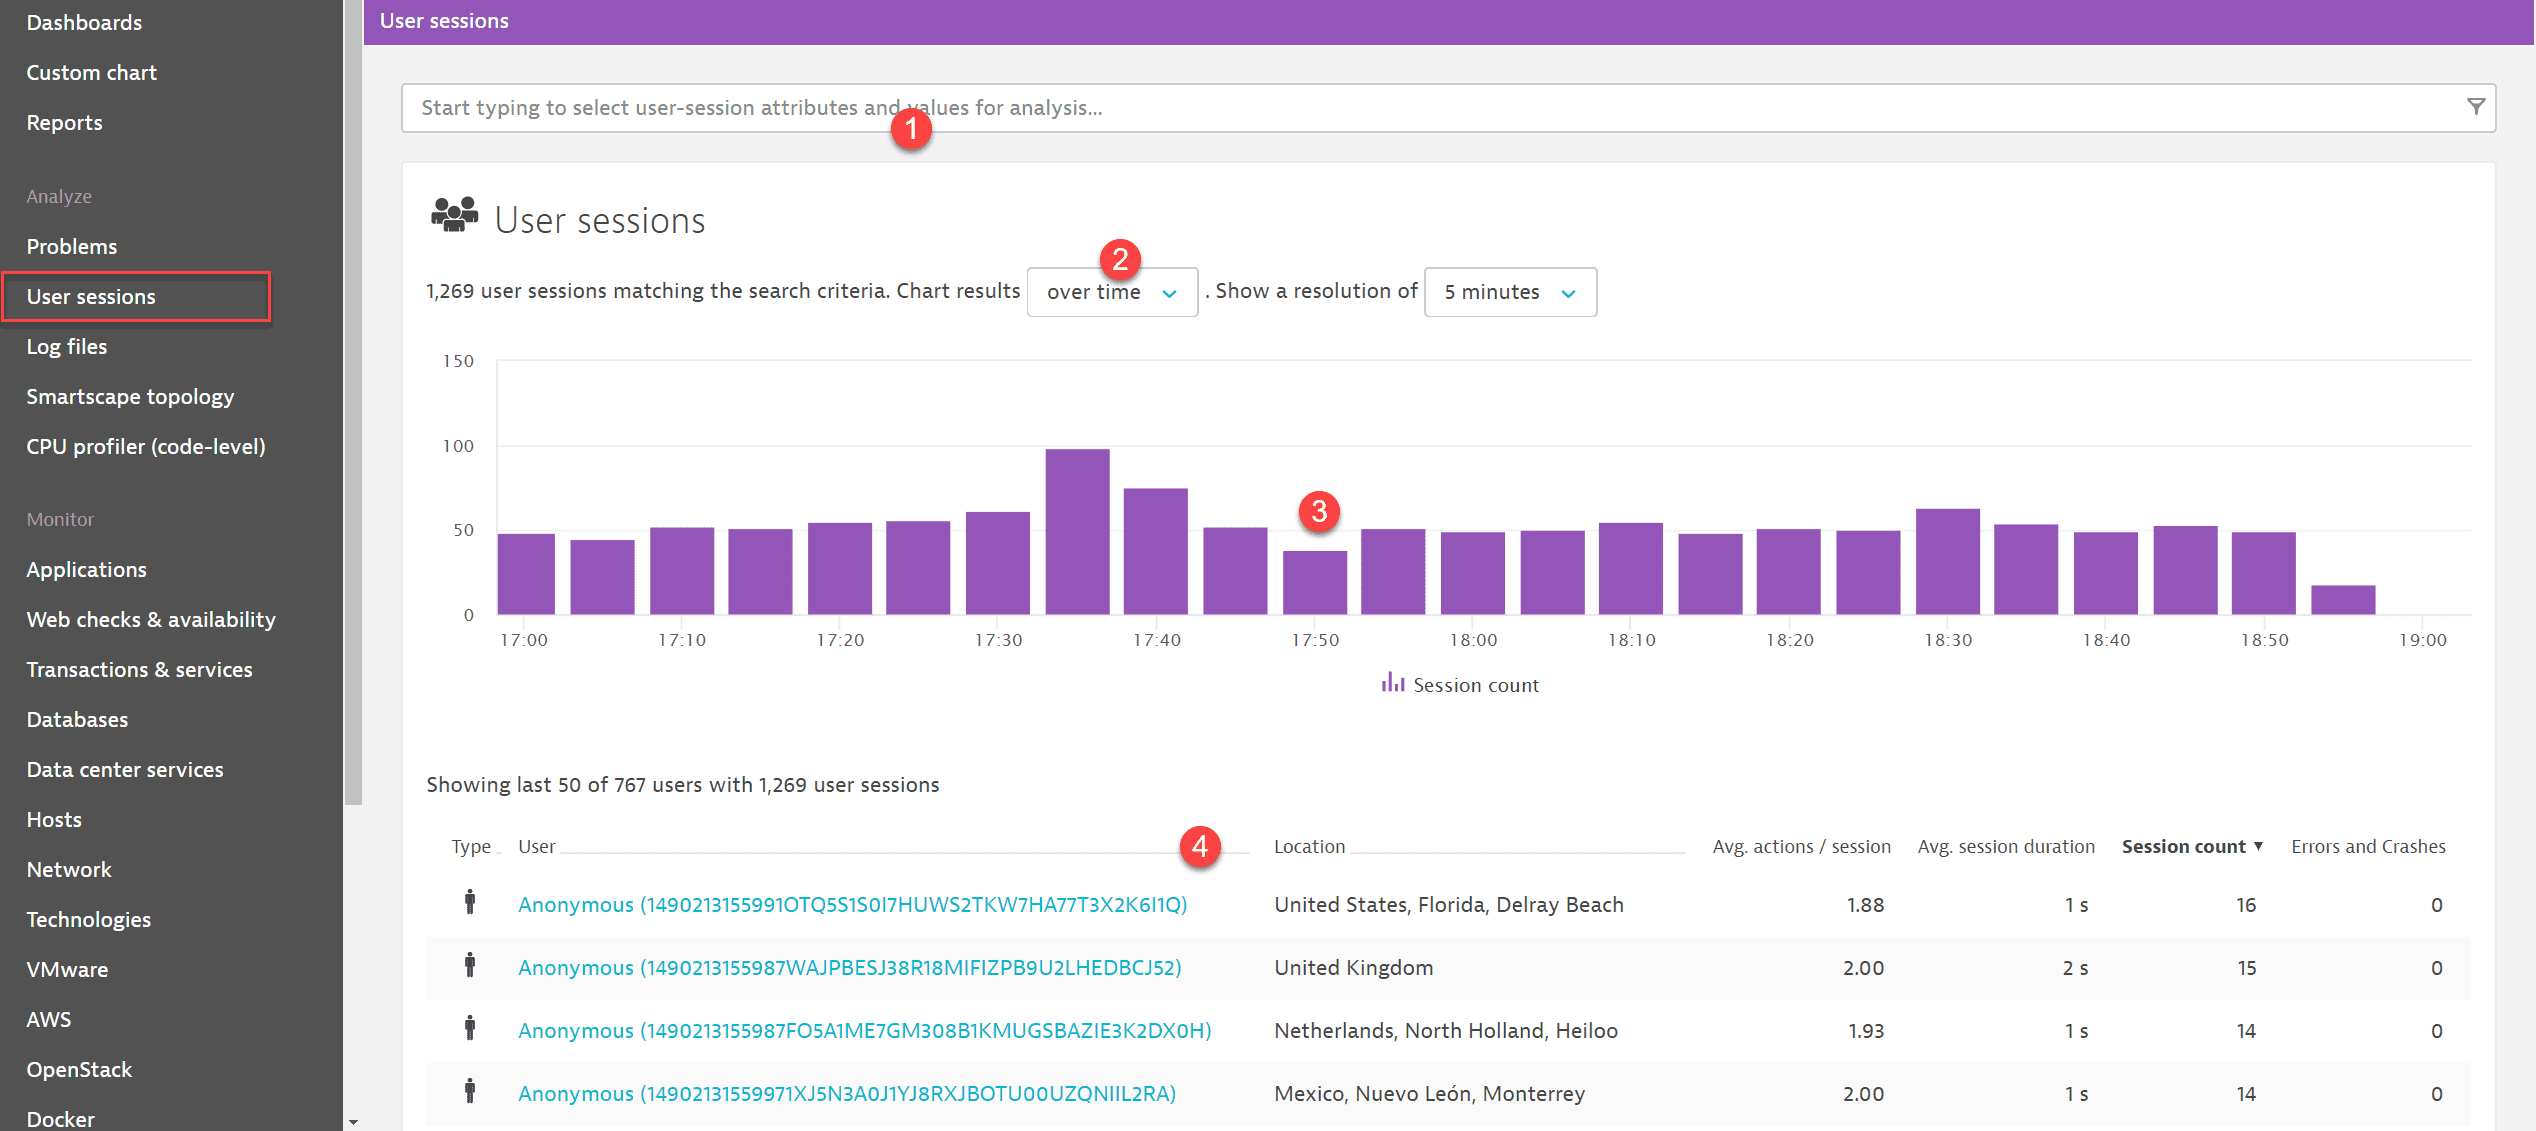 User session analysis | Dynatrace Help